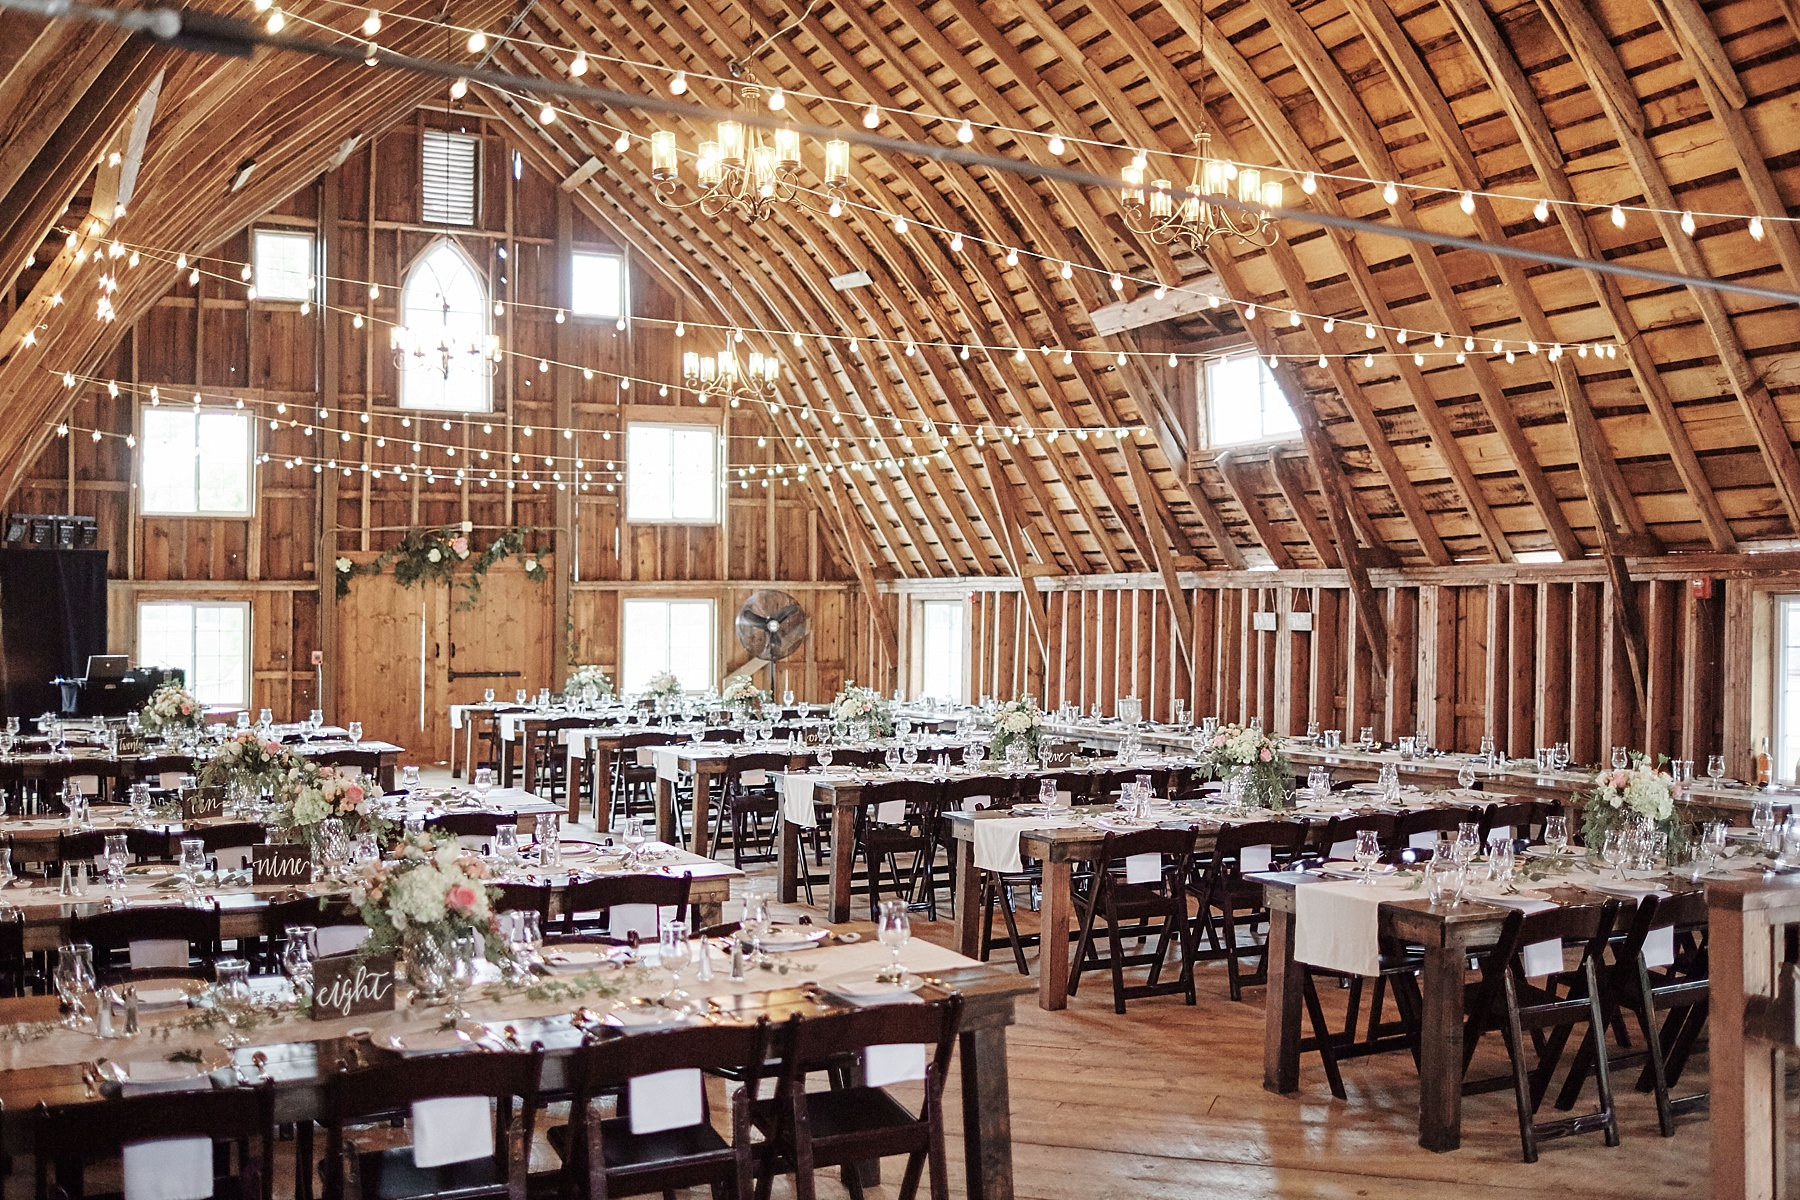 Bloom-Lake-Barn-Wedding-Schafer-Minnesota-Outdoor_0265.jpg